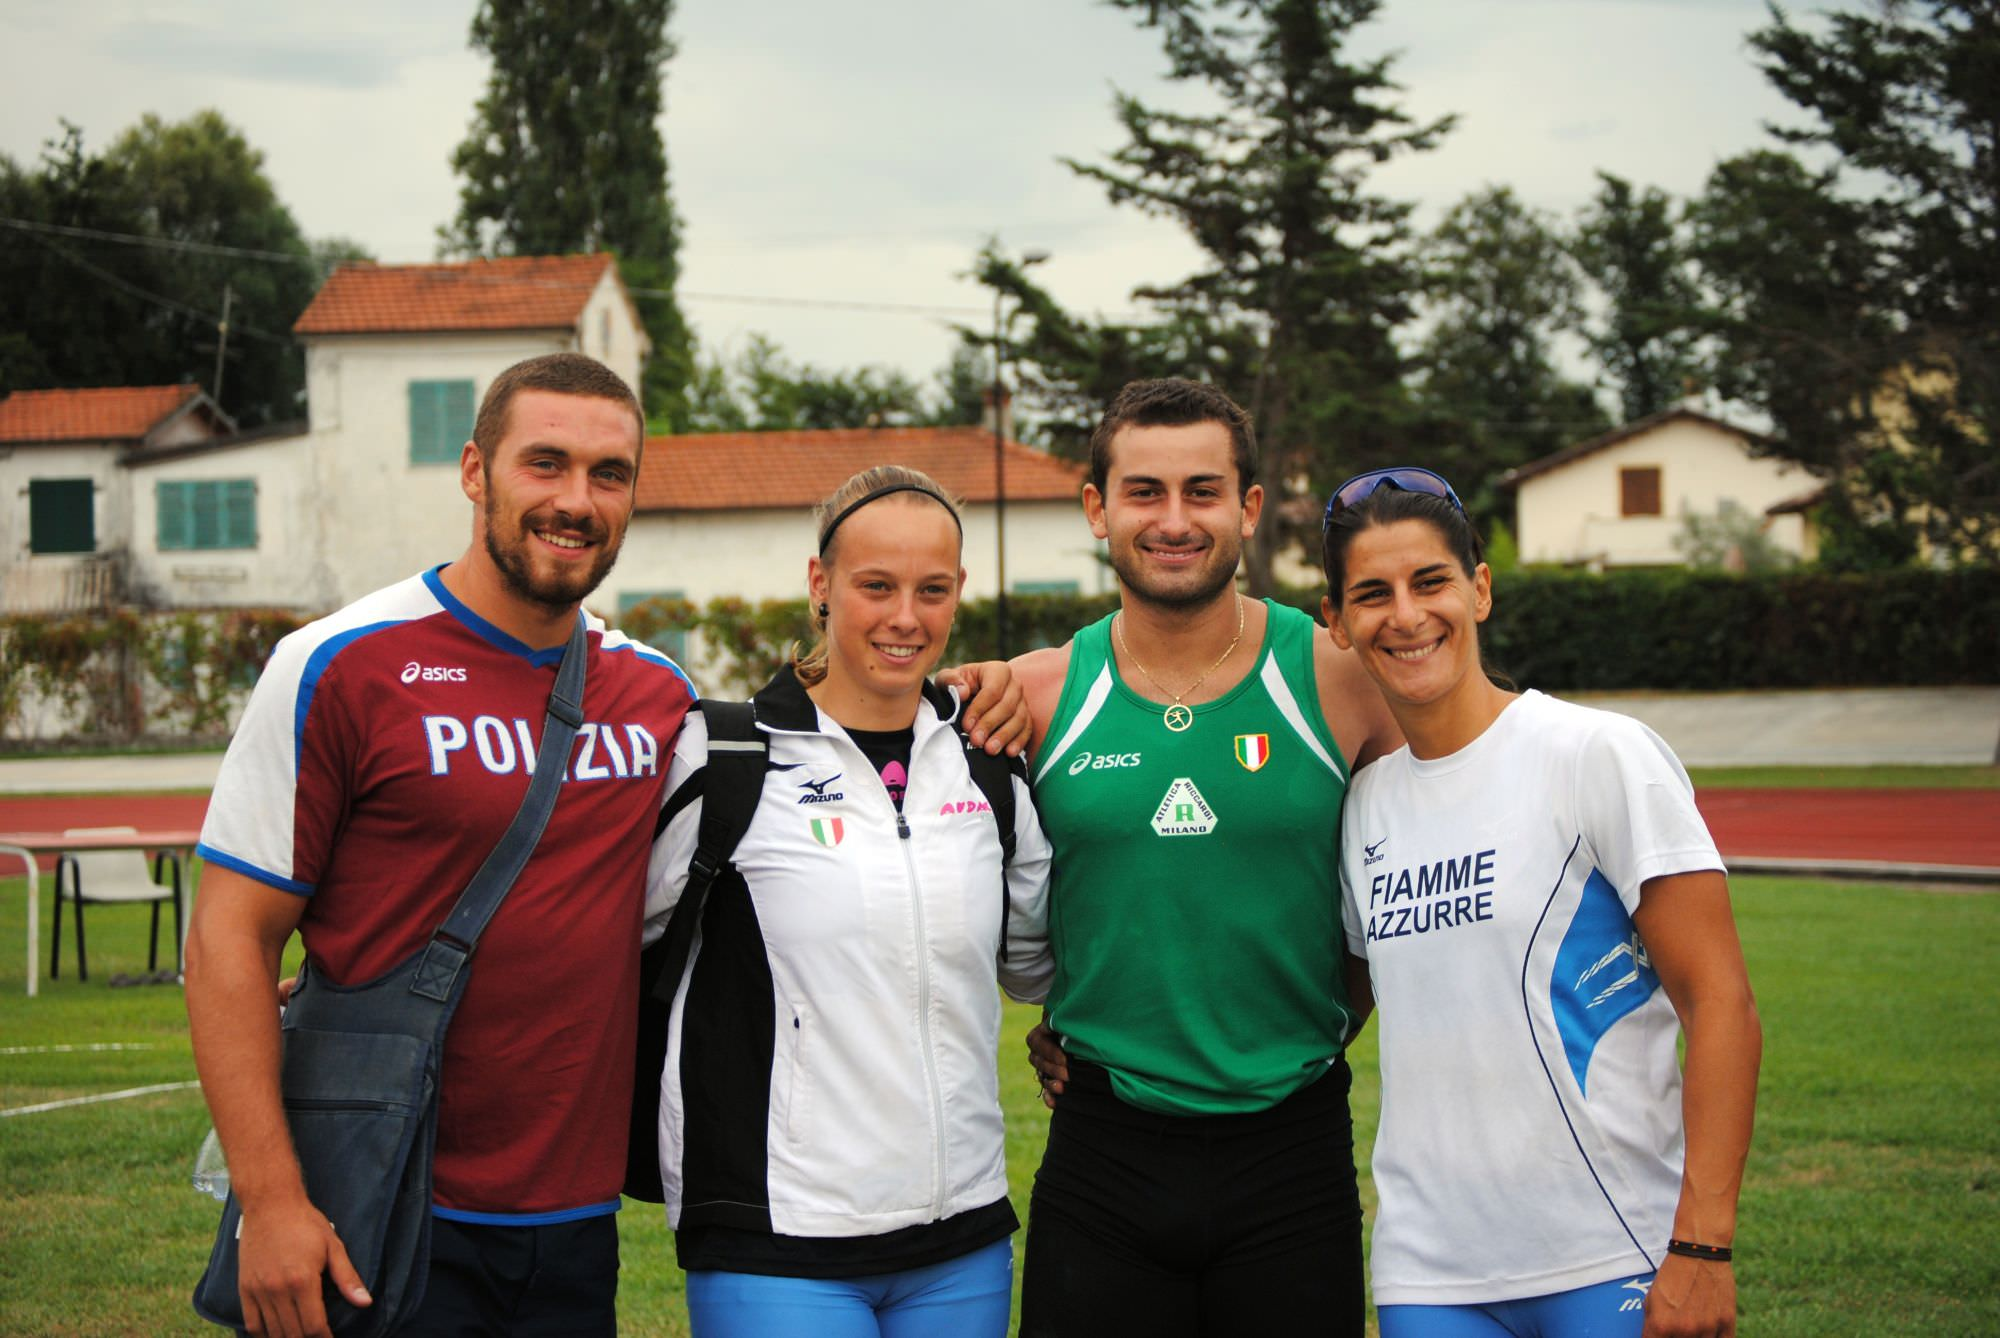 Meeting di atletica in ricordo di Mario Vecoli